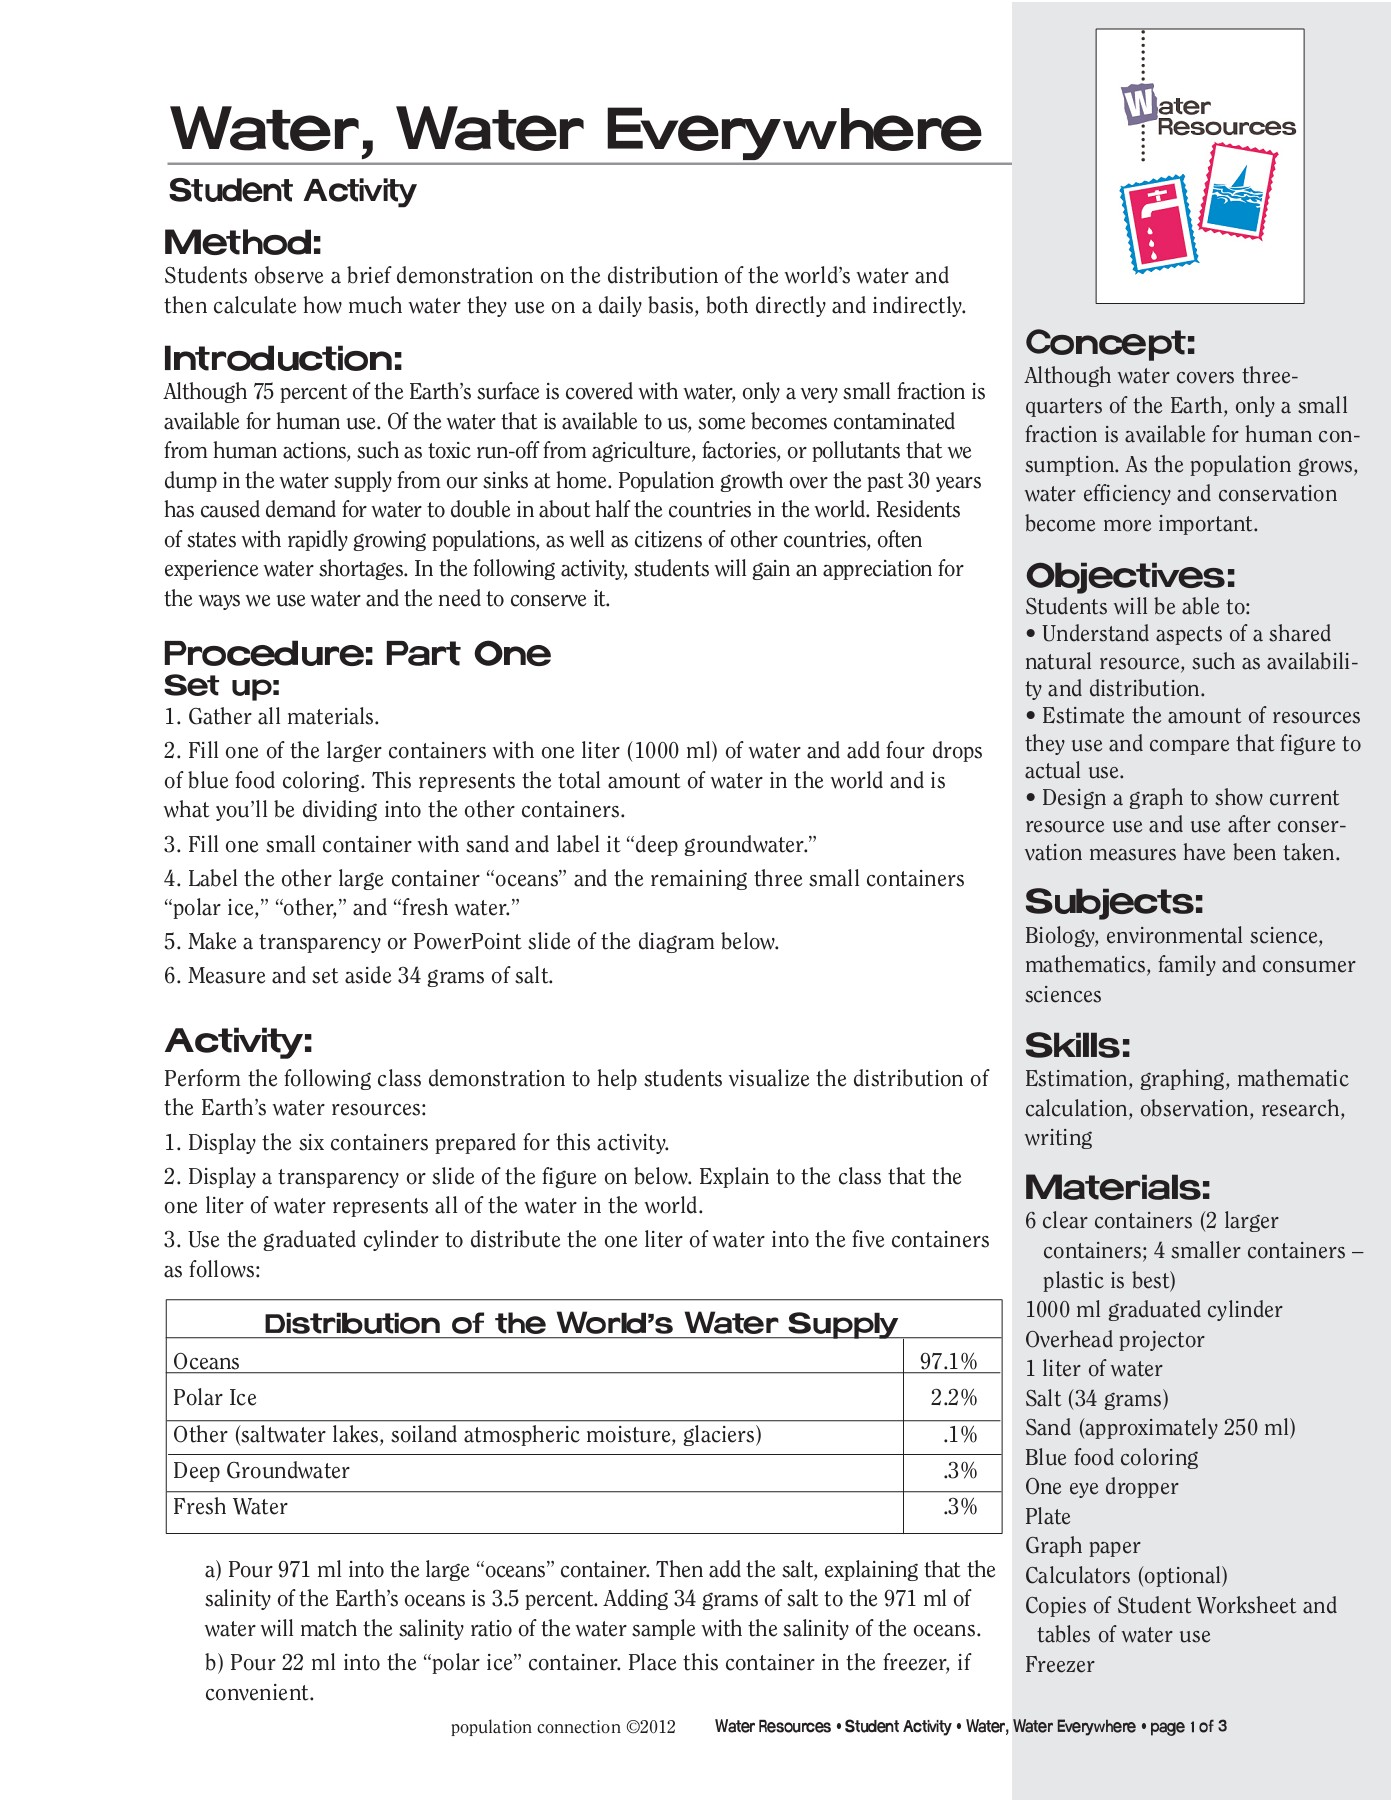 Water Water Everywhere Populationeducation Org Flip Ebook Pages 1 4 Anyflip Anyflip [ 1800 x 1391 Pixel ]